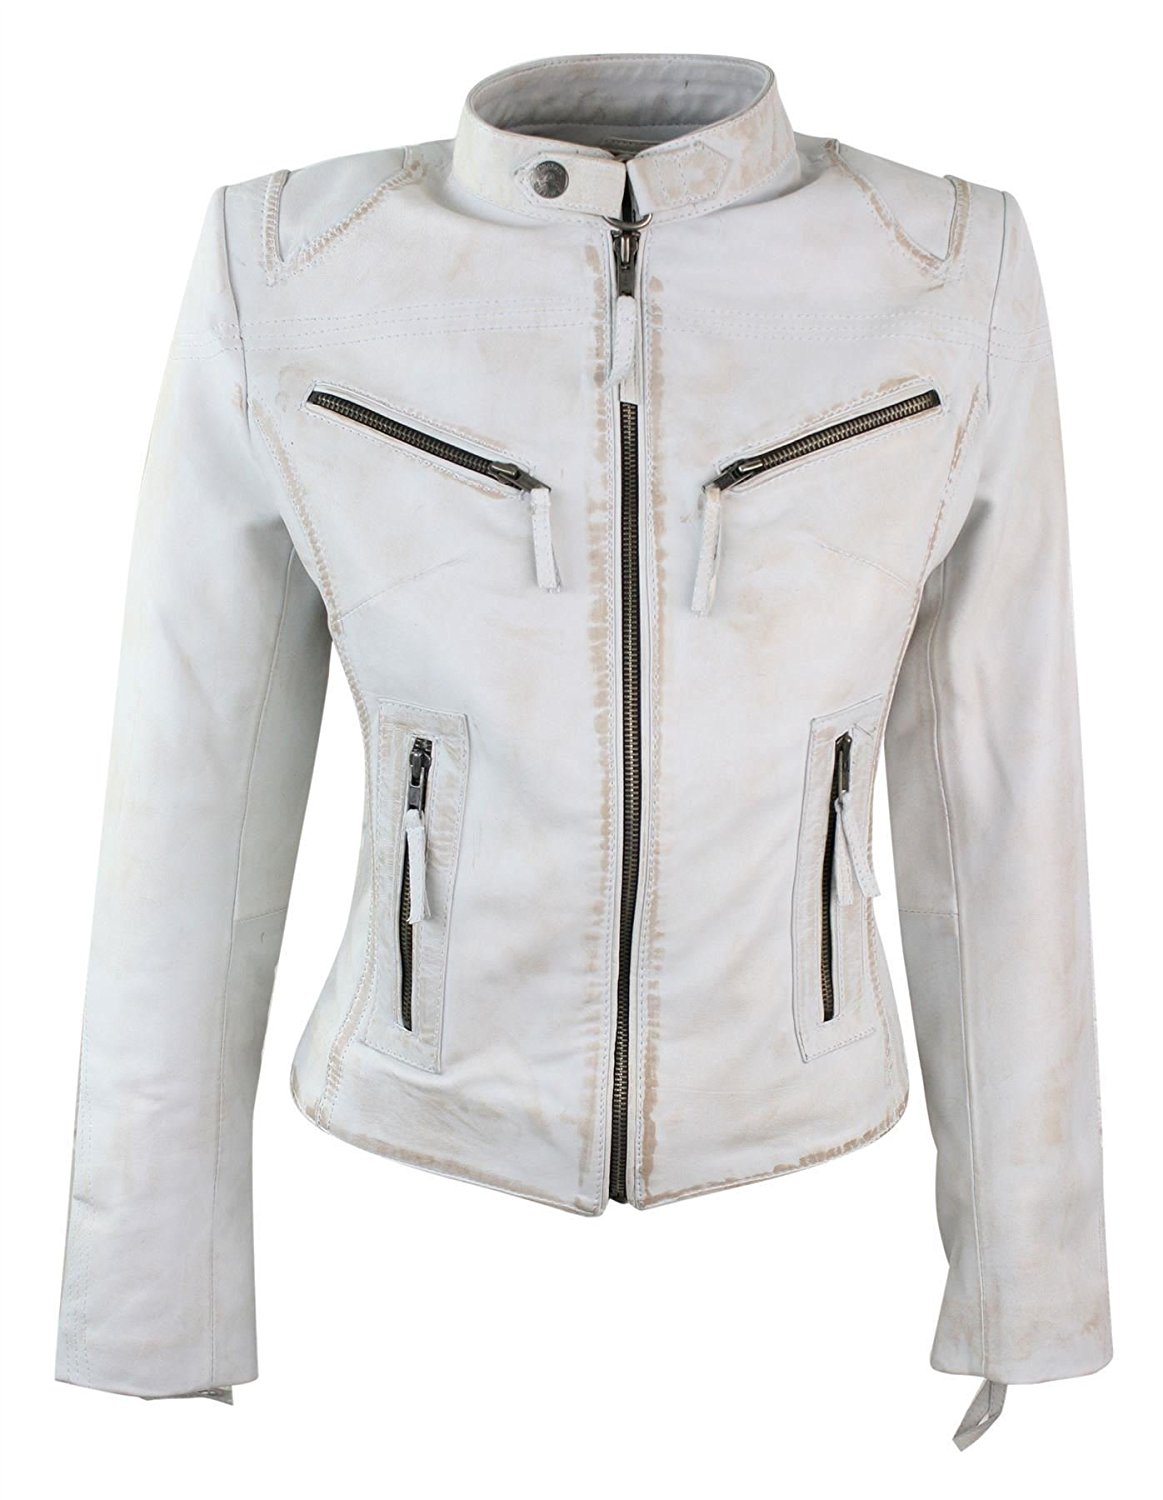 Aviatrix 100% Ladies Real Leather Jacket Fitted Bikers Style Vintage White Rock